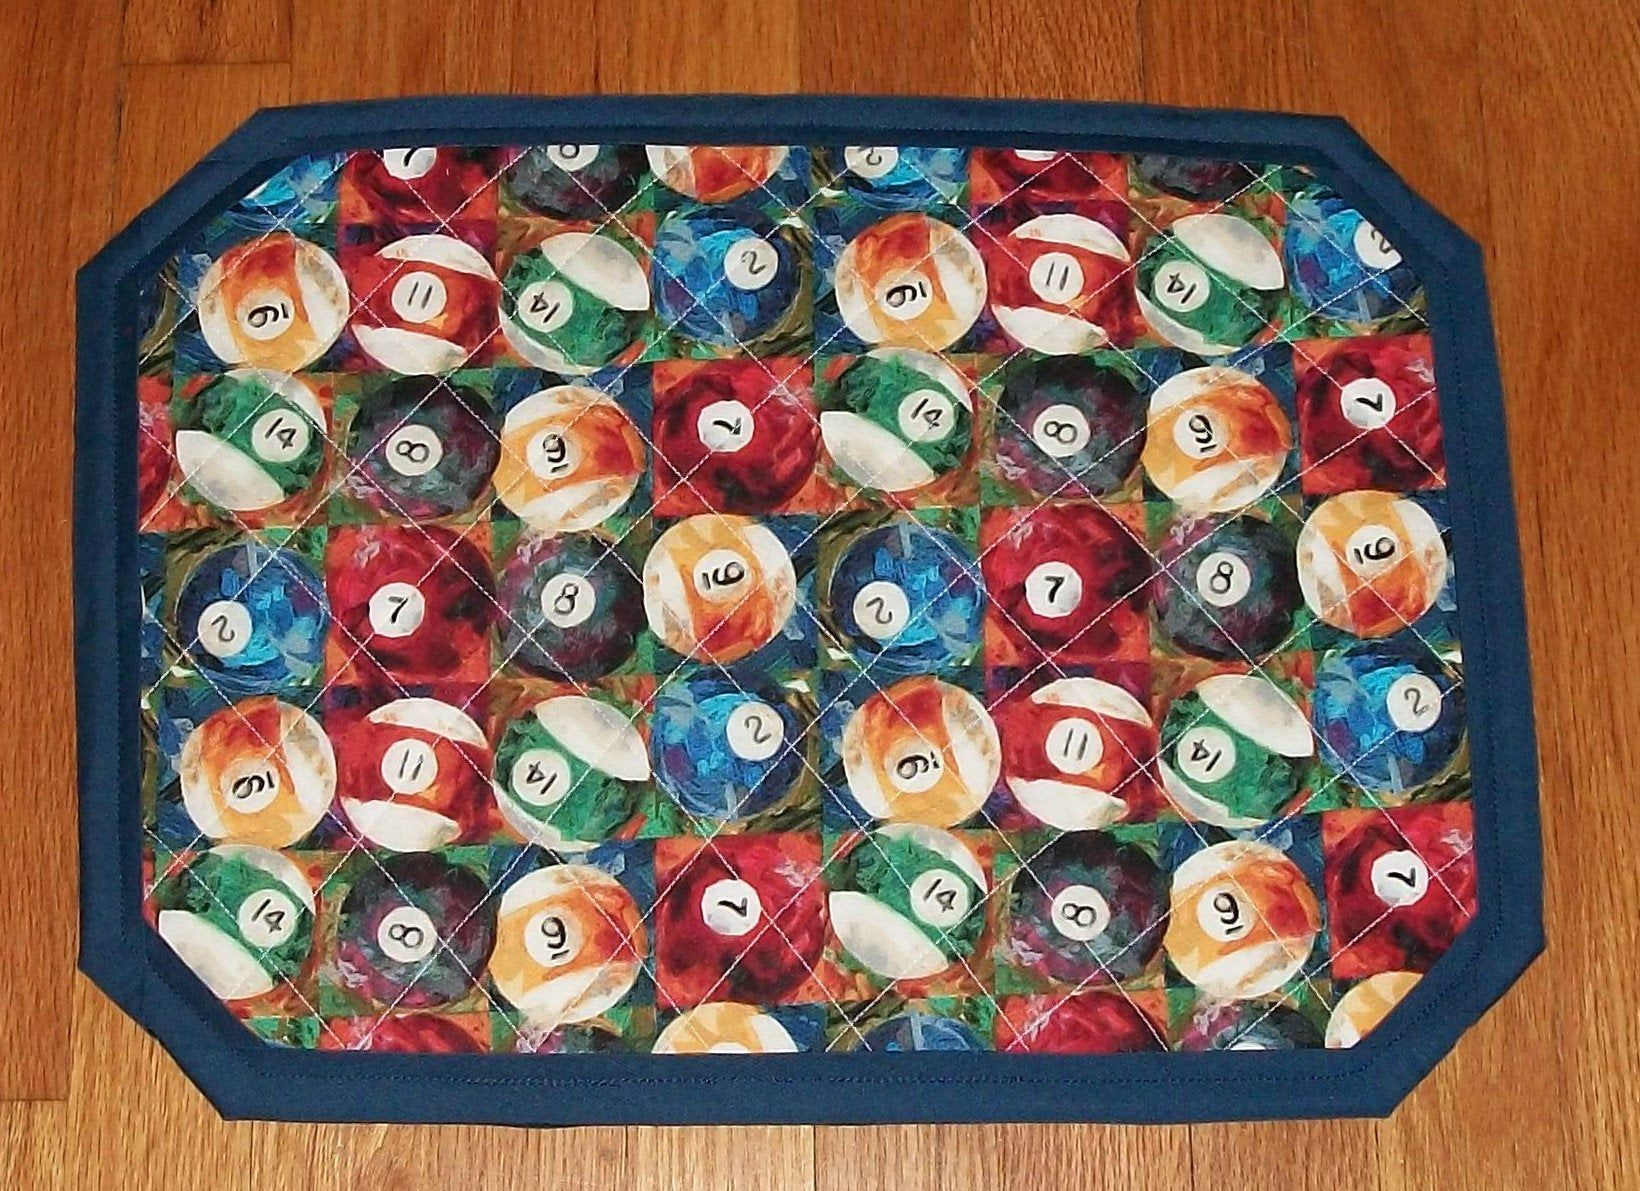 Billiard pool cue balls quilted placemat table mat